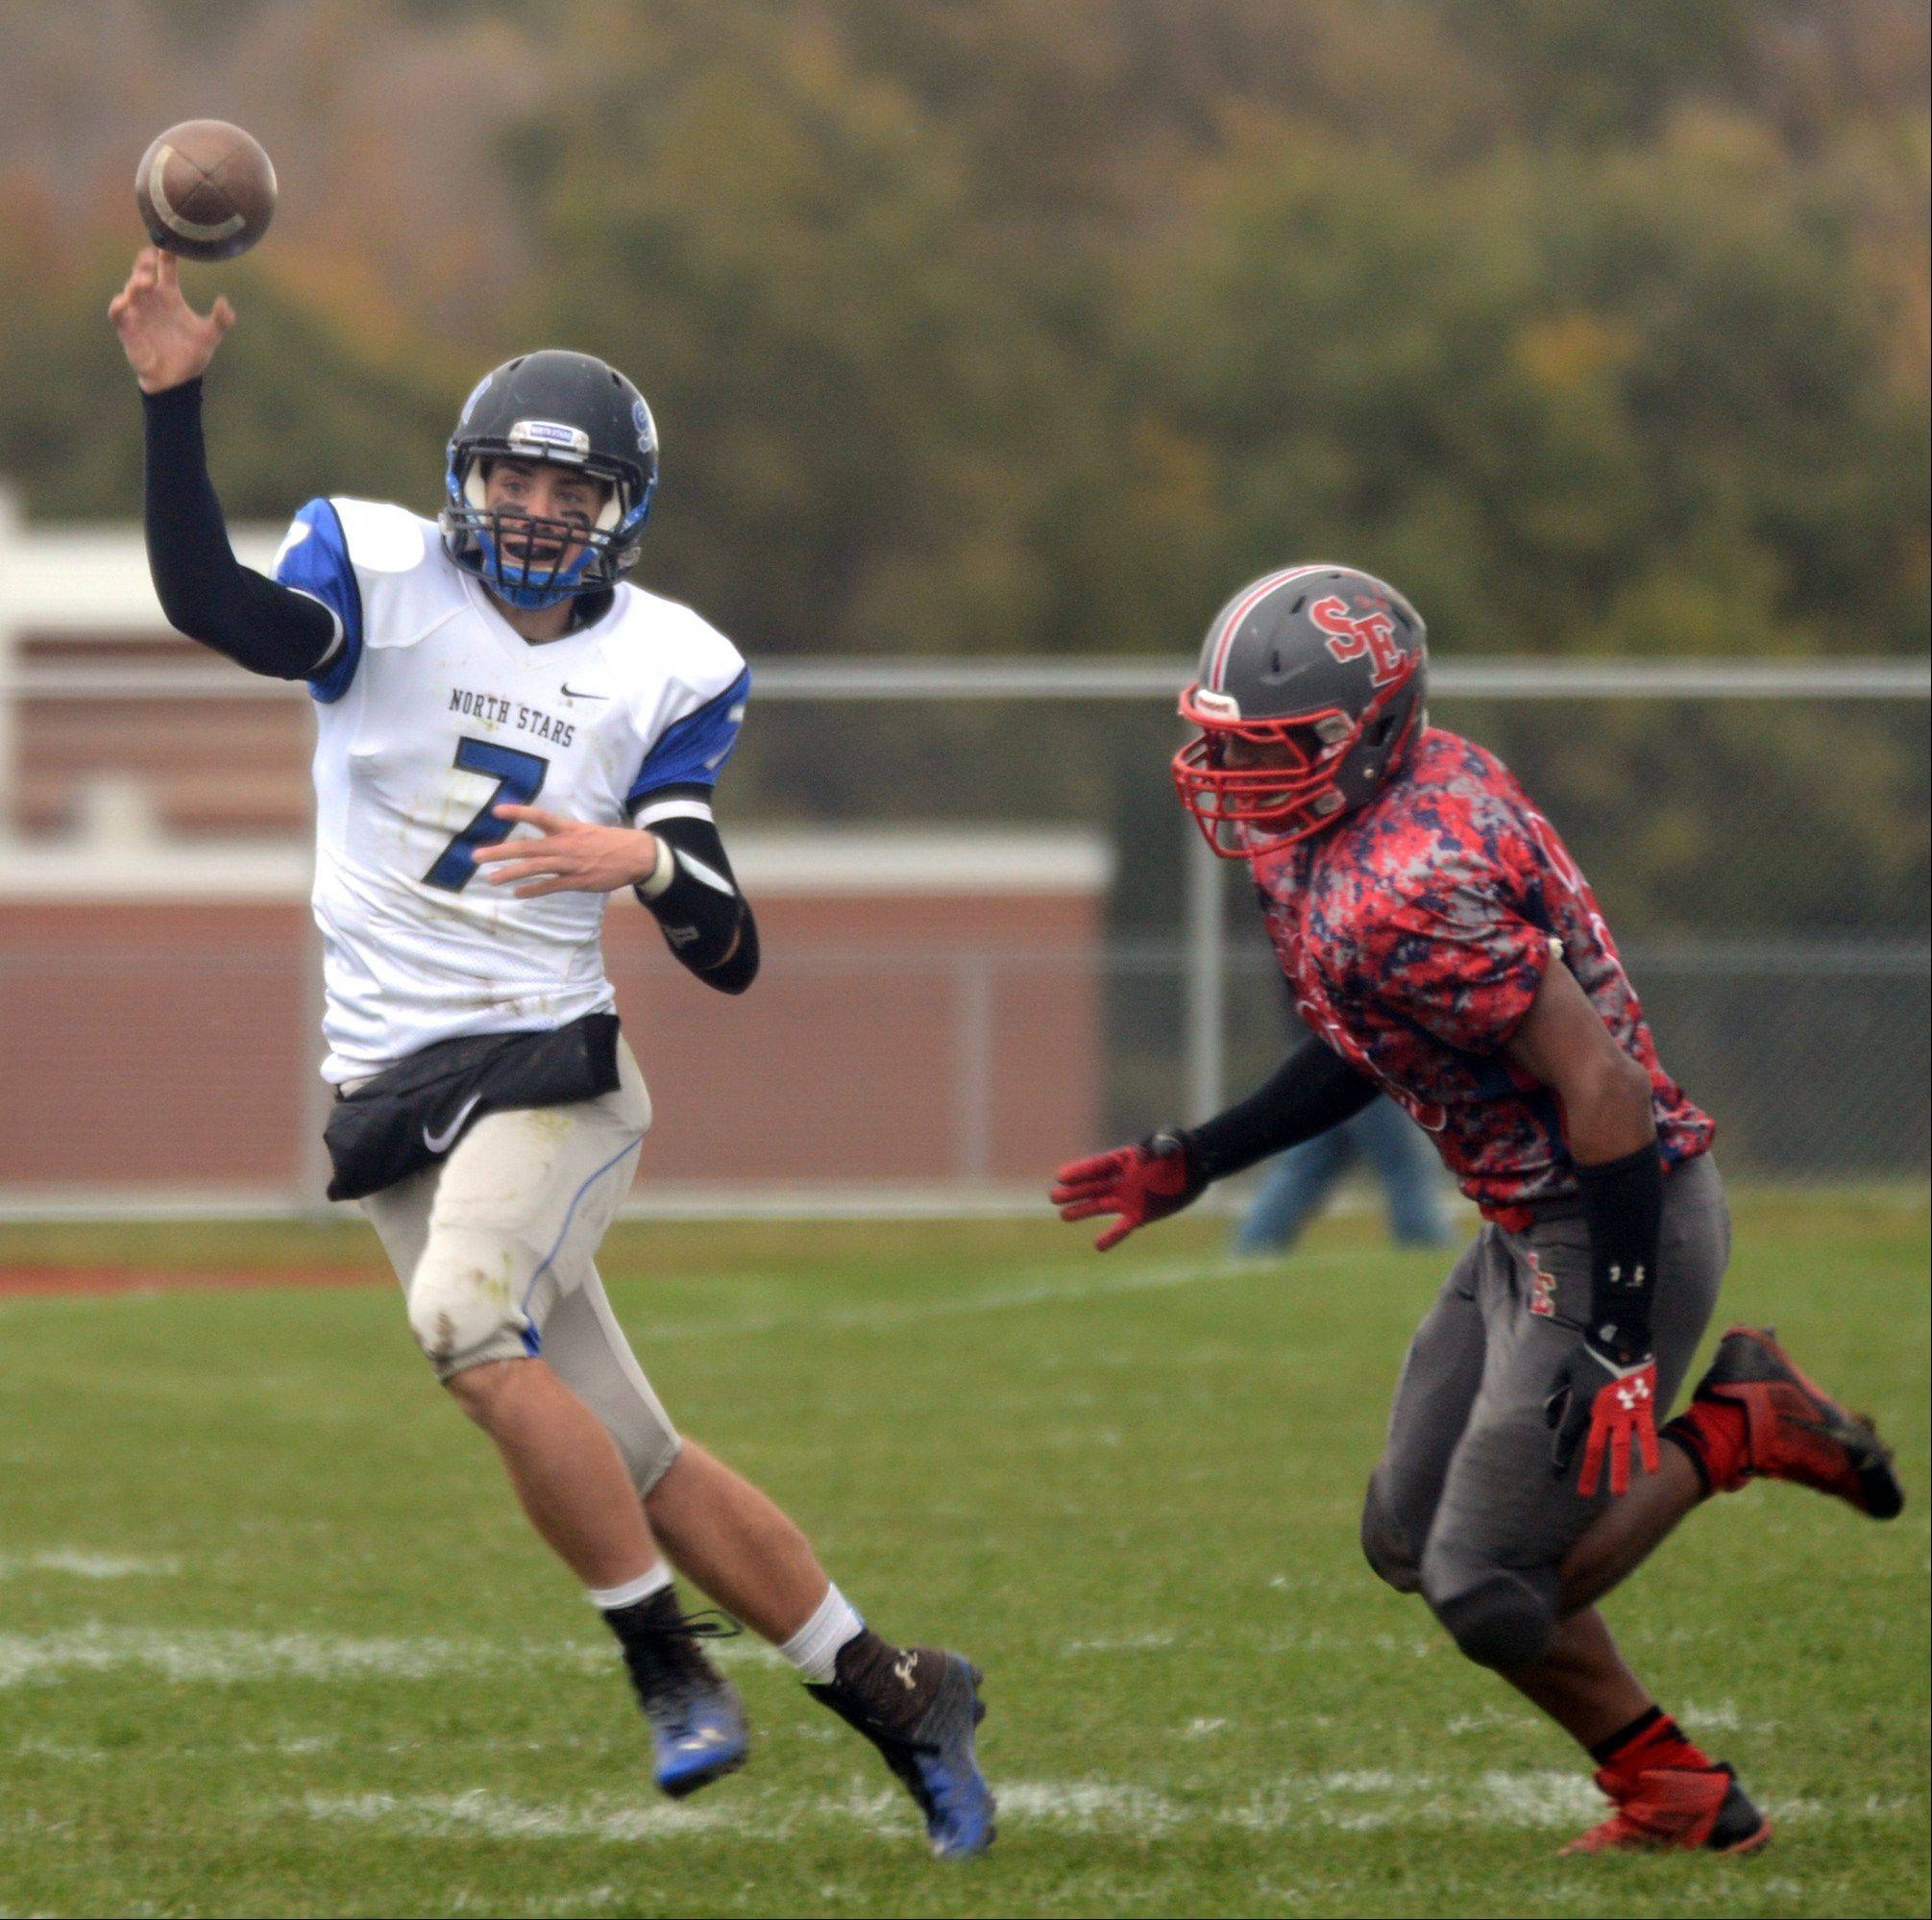 St. Charles North quarterback Erik Miller throws the ball.